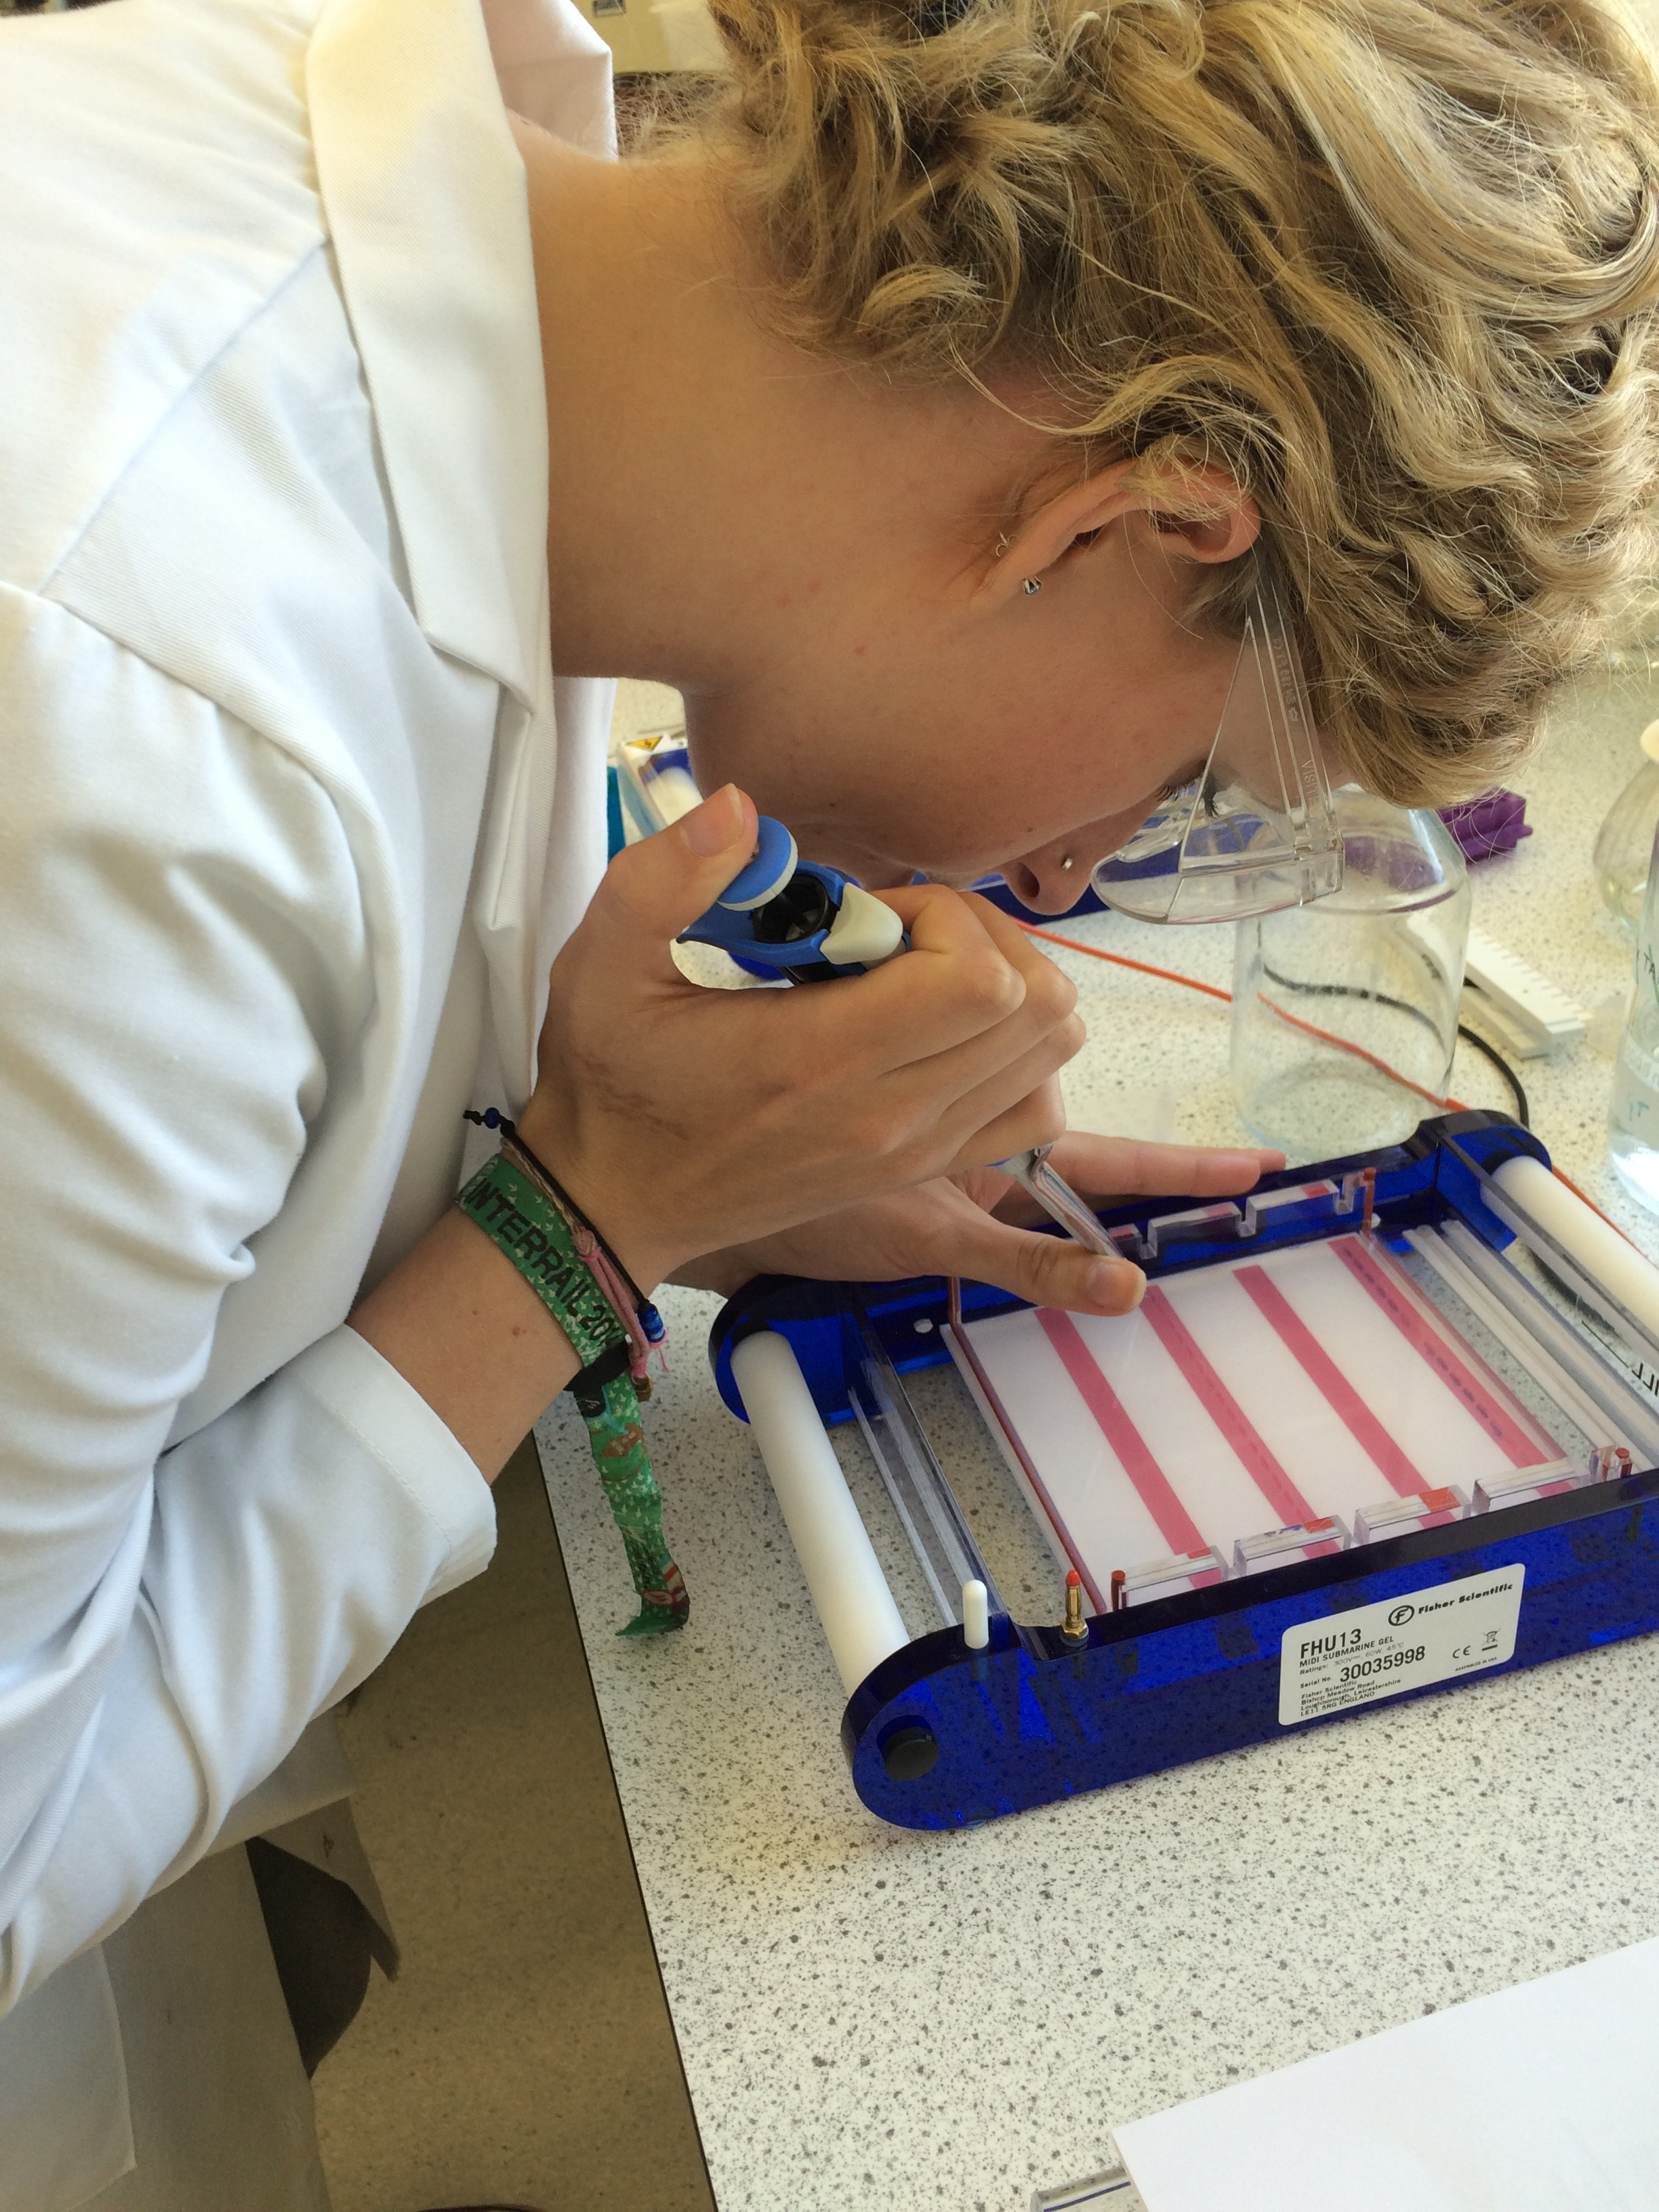 Running electrophoresis gels and pcr using live snail DNA